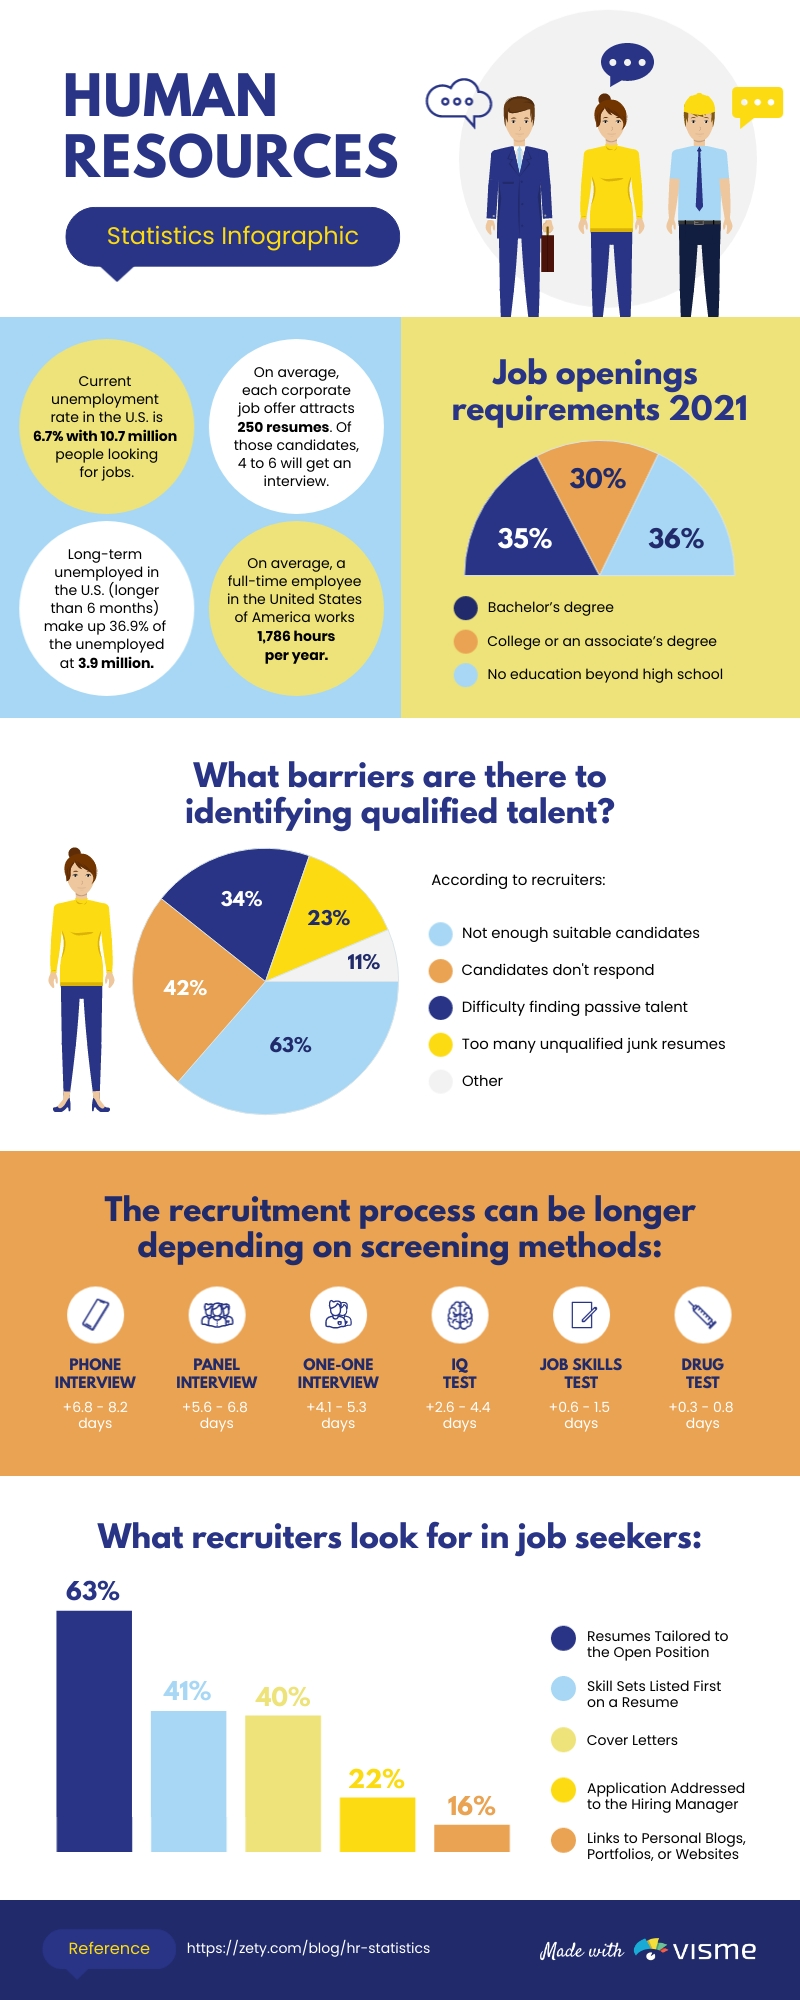 Human Resources Statistics - Infographic  Template